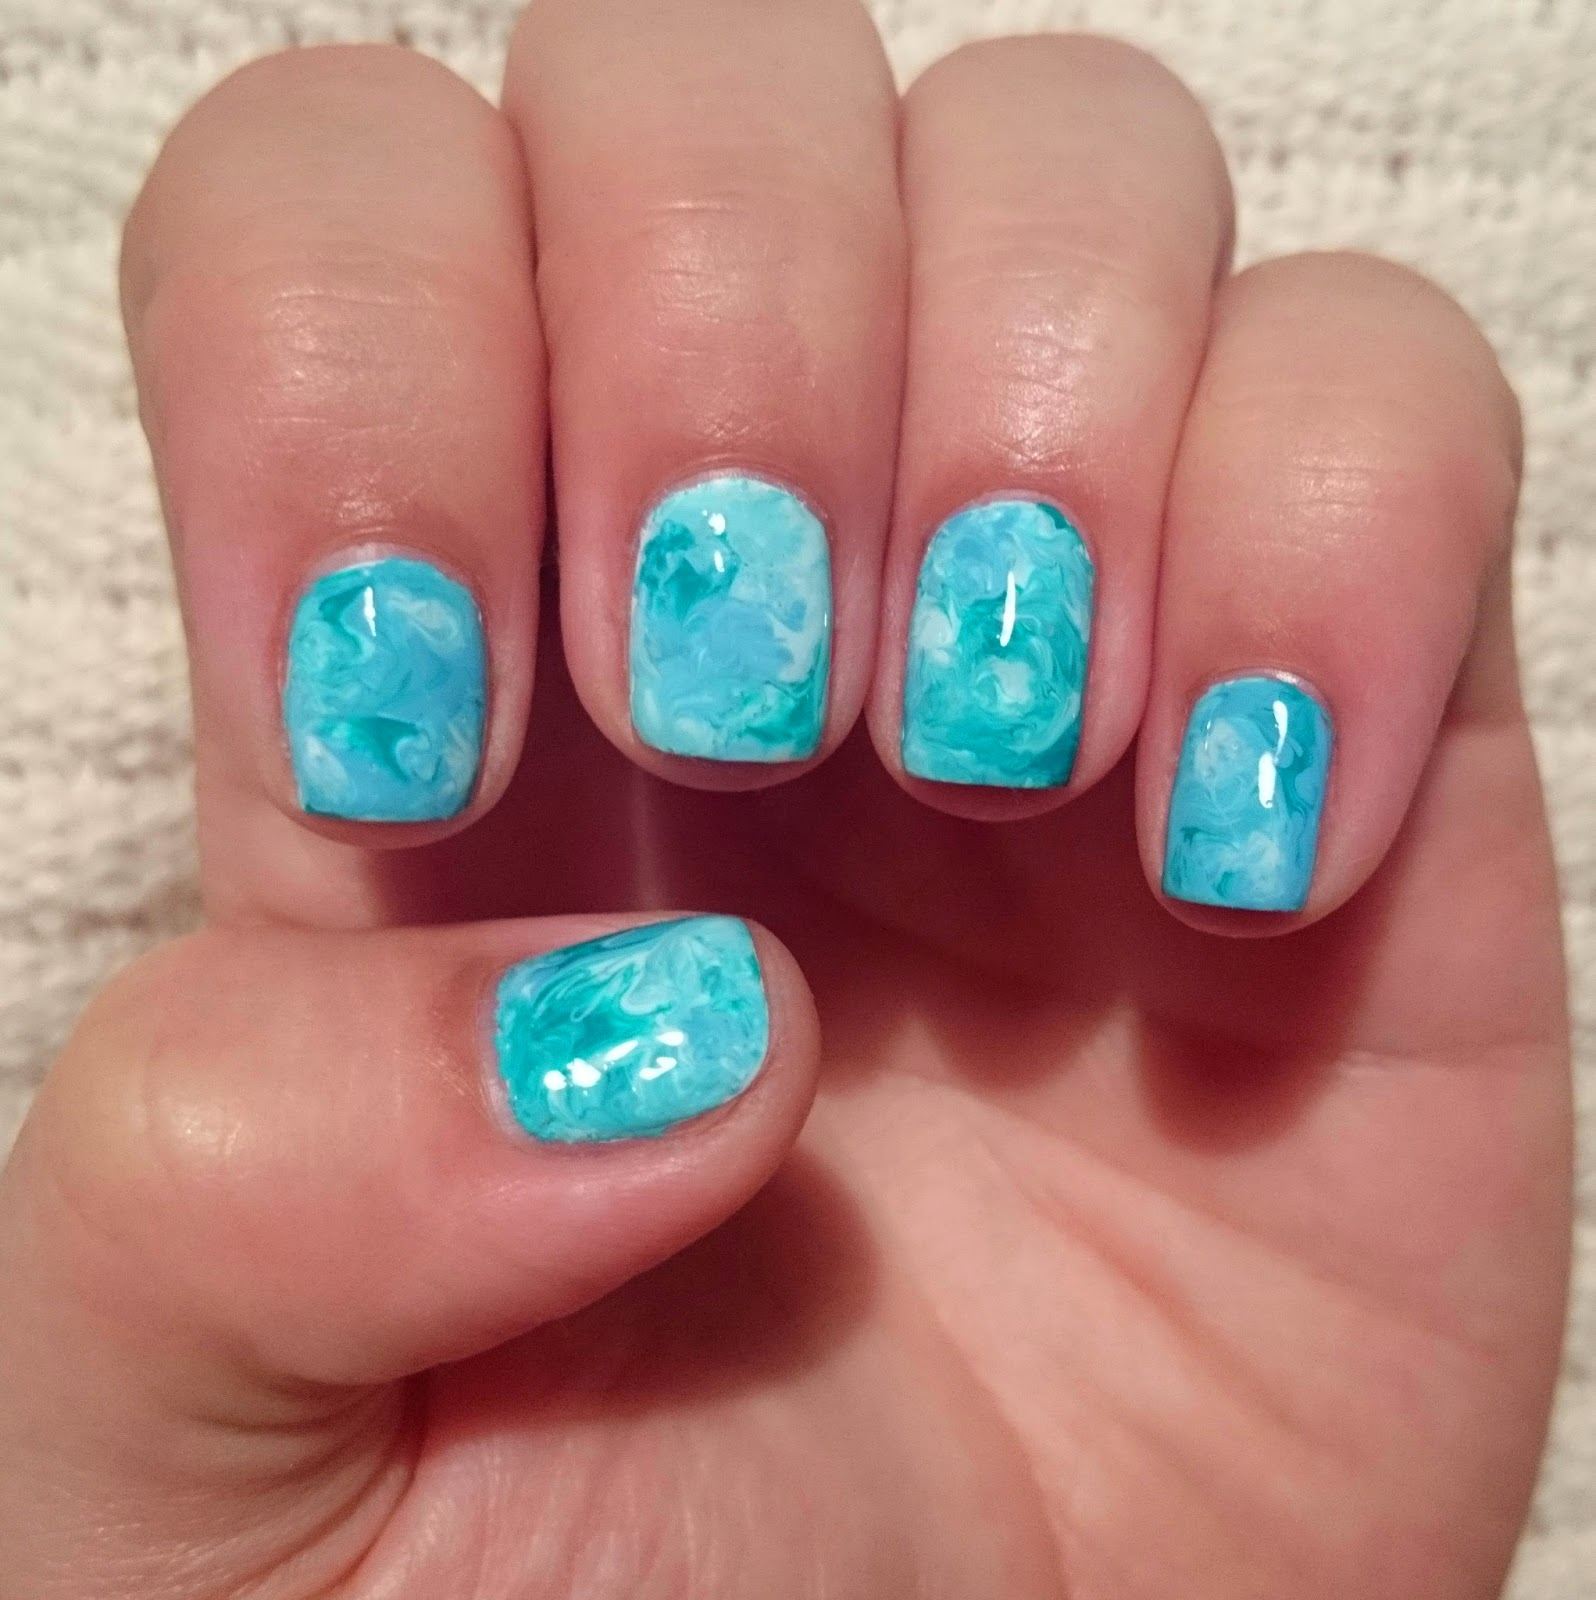 Toothpick Nail Art Designs: Dahlia Nails: Toothpick Marble Effect